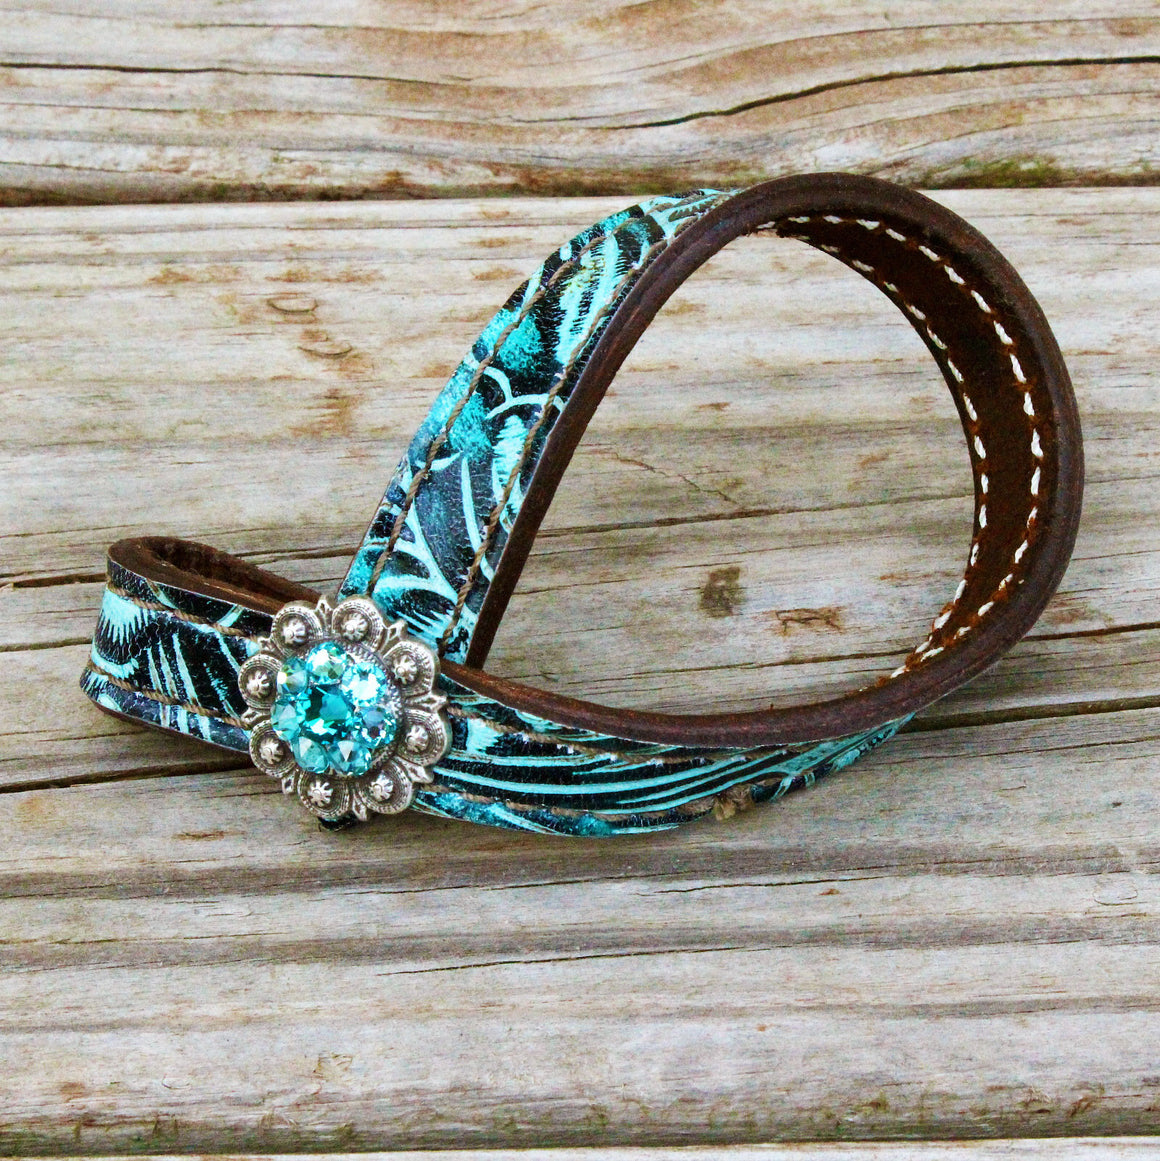 Teal Filigree TieDown Keeper w/Turquoise & Teal Crystal Rhinestone Concho